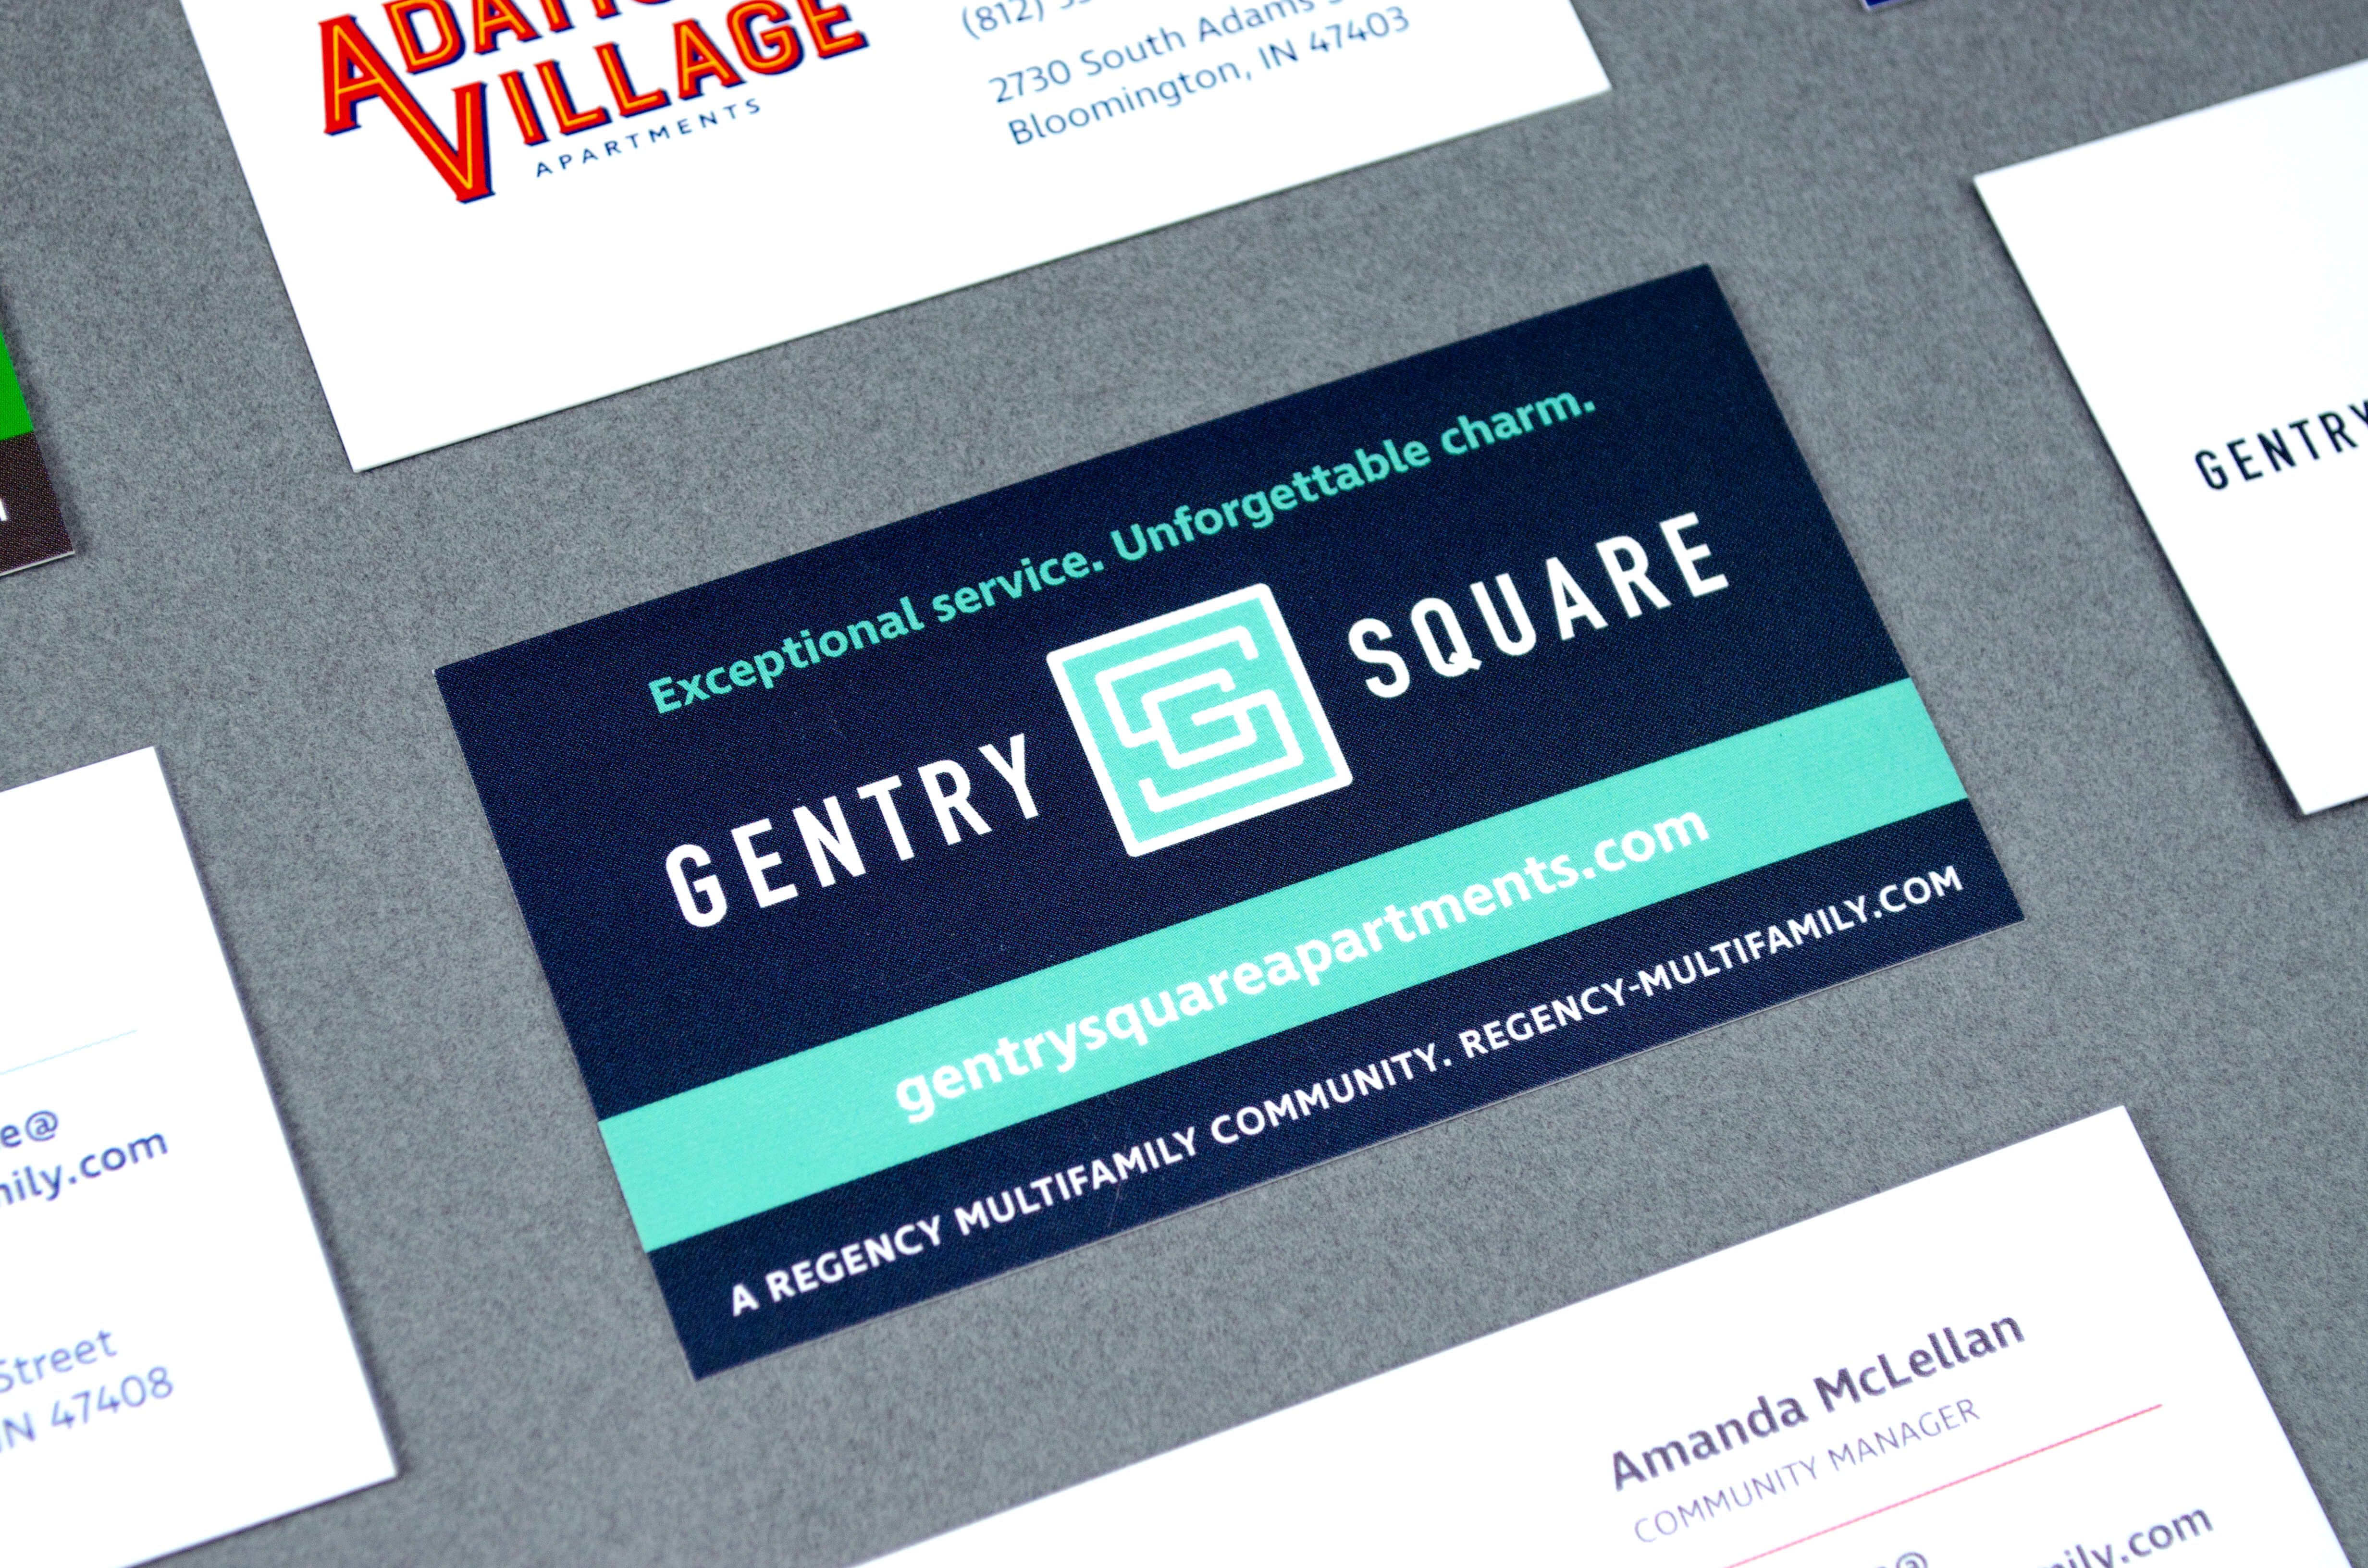 Regency - Gentry Square Apartments - Branding